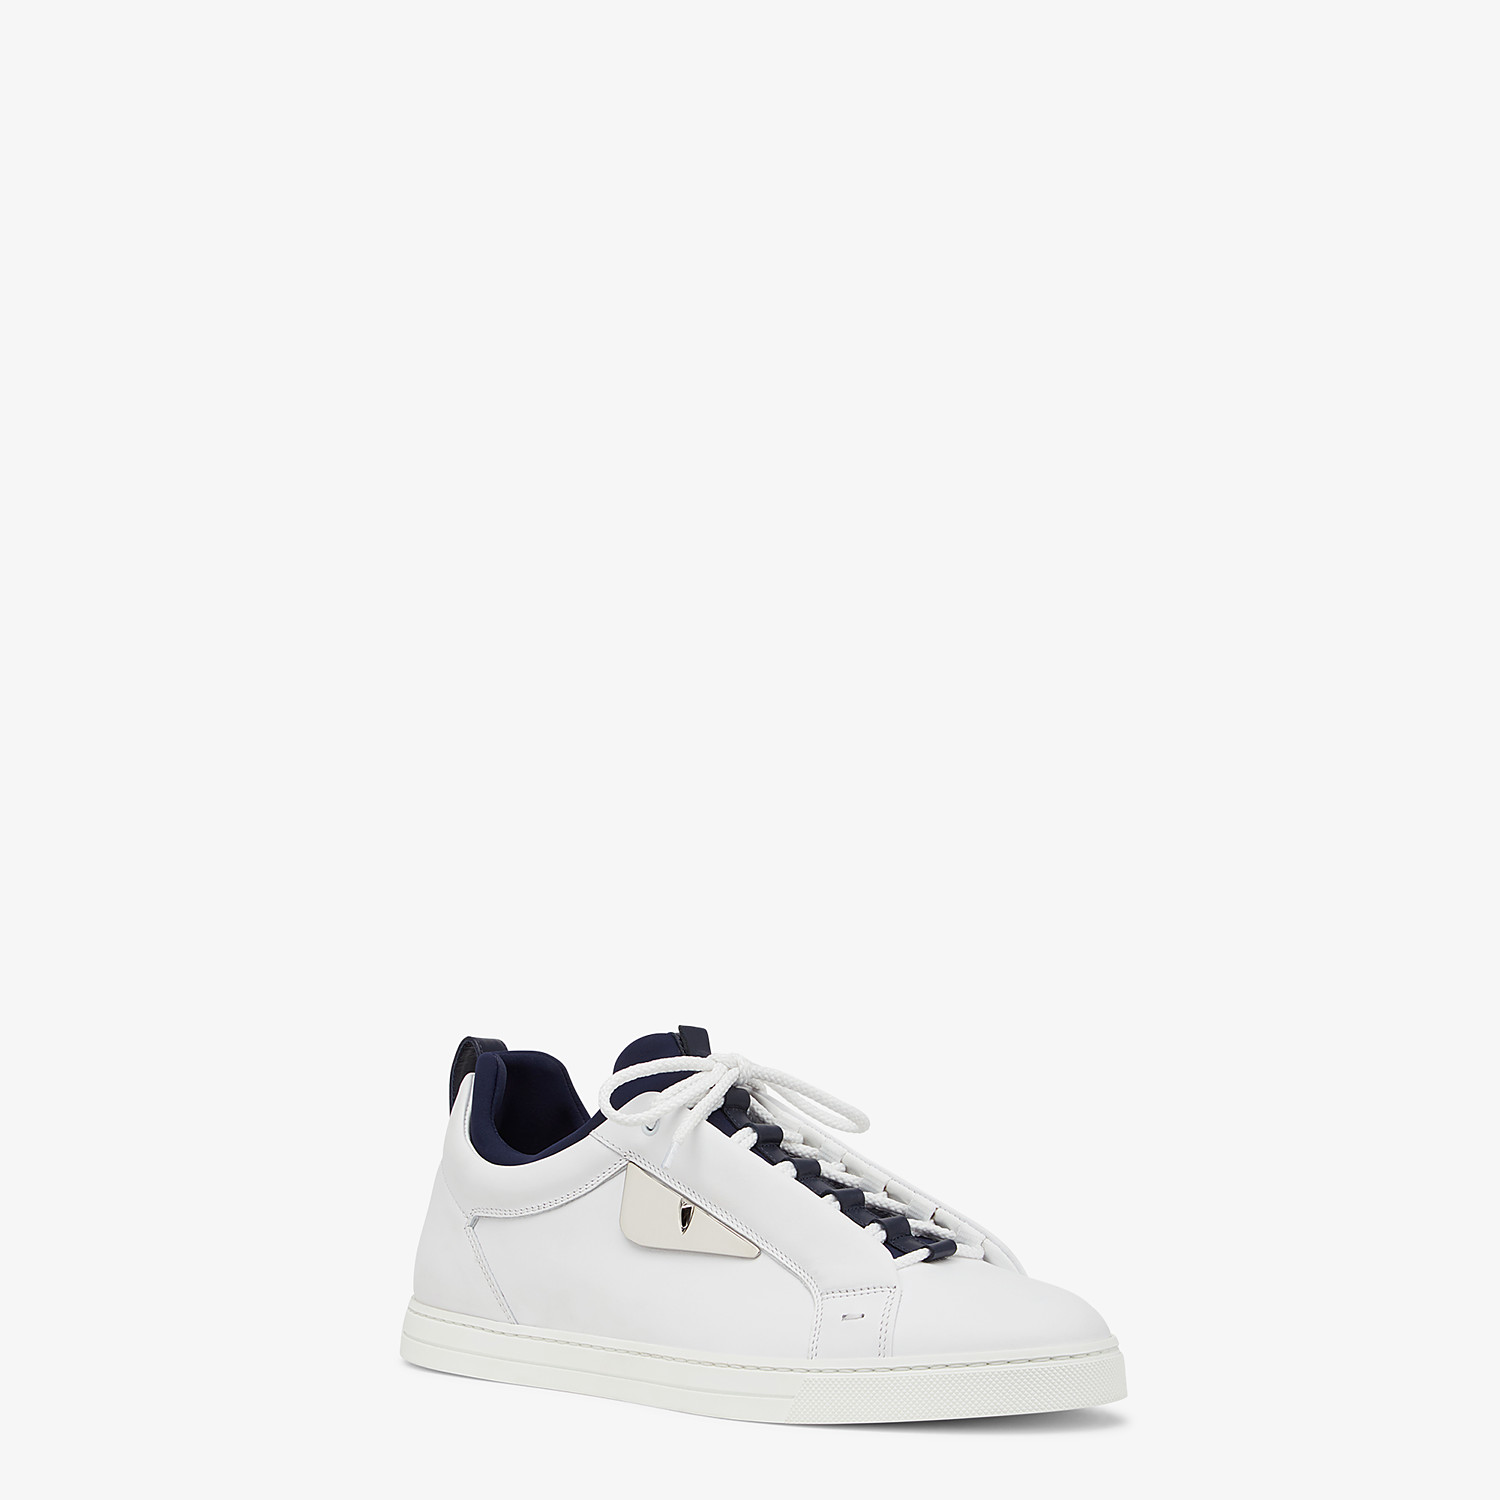 FENDI SNEAKERS - White leather low-tops - view 2 detail